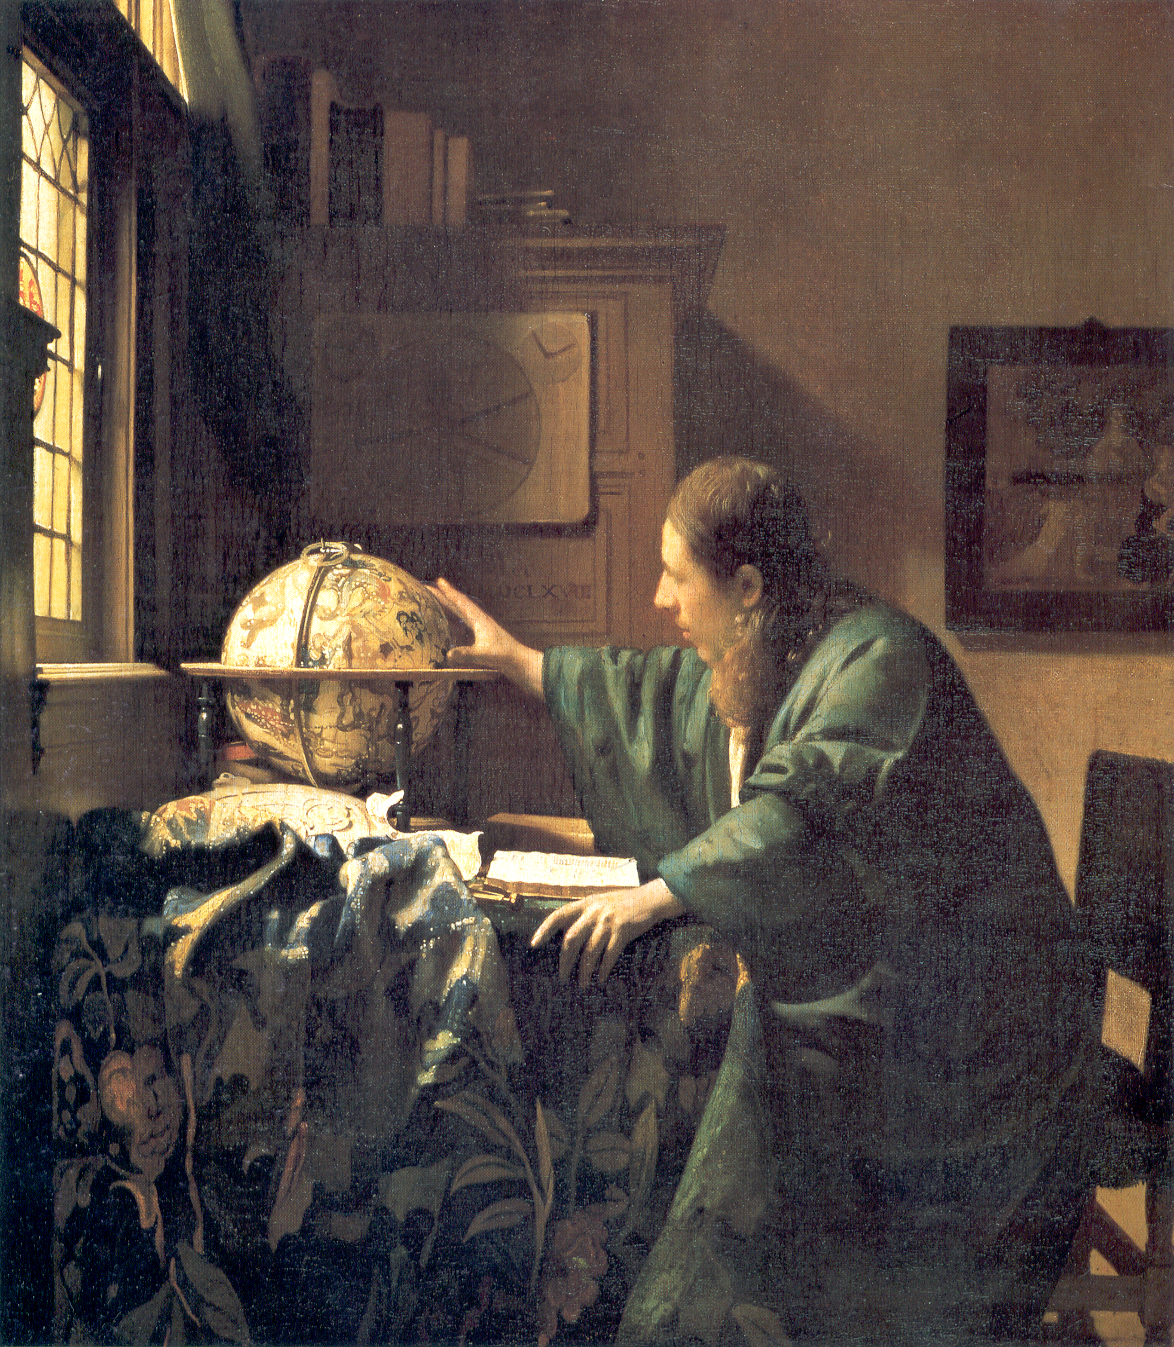 https://upload.wikimedia.org/wikipedia/commons/3/32/JohannesVermeer-TheAstronomer%281668%29.jpg